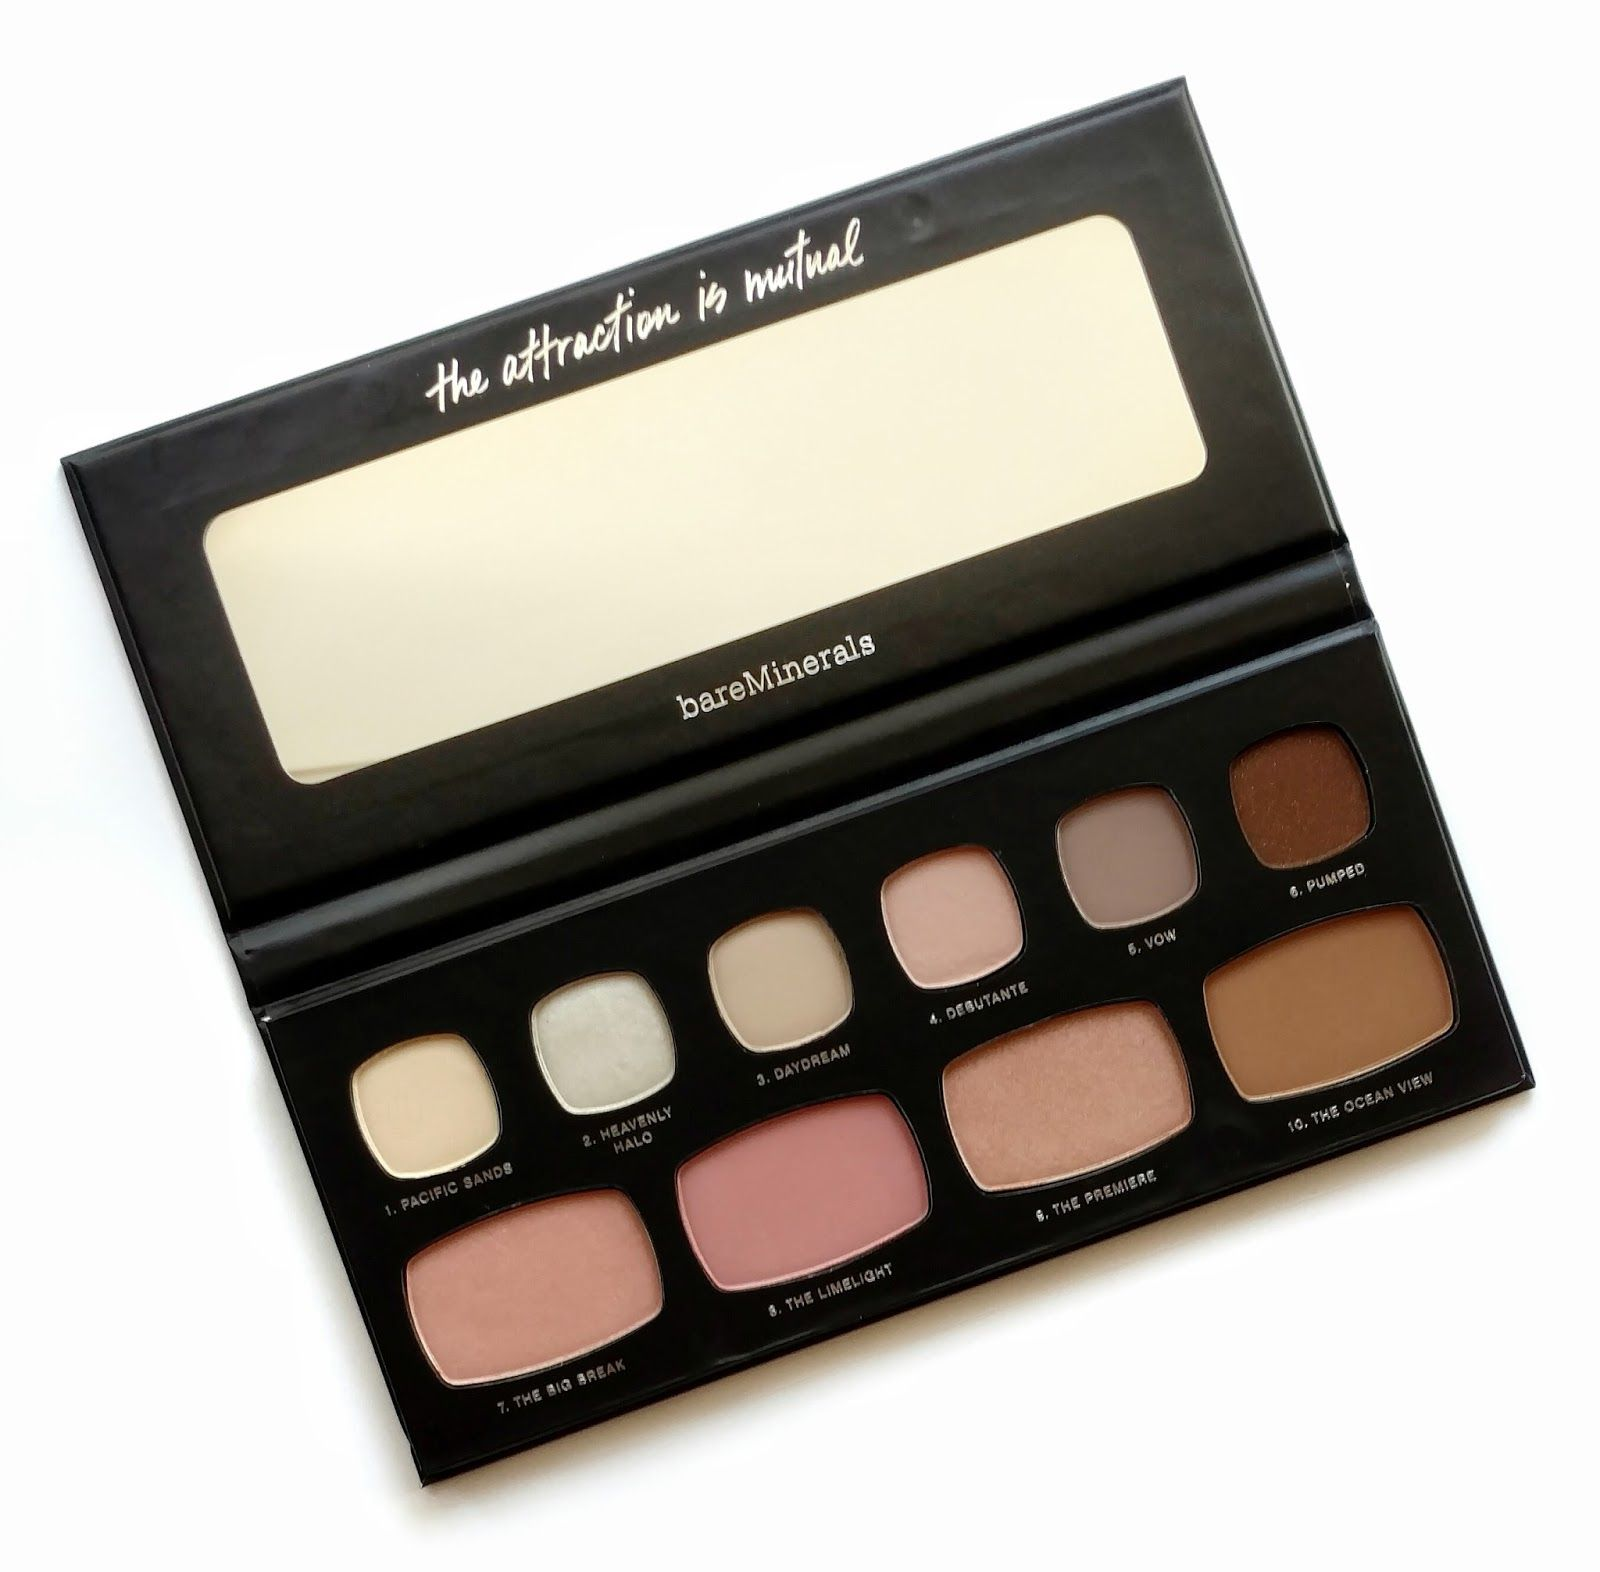 bareMinerals The Neutral Attraction Palette Review (and it